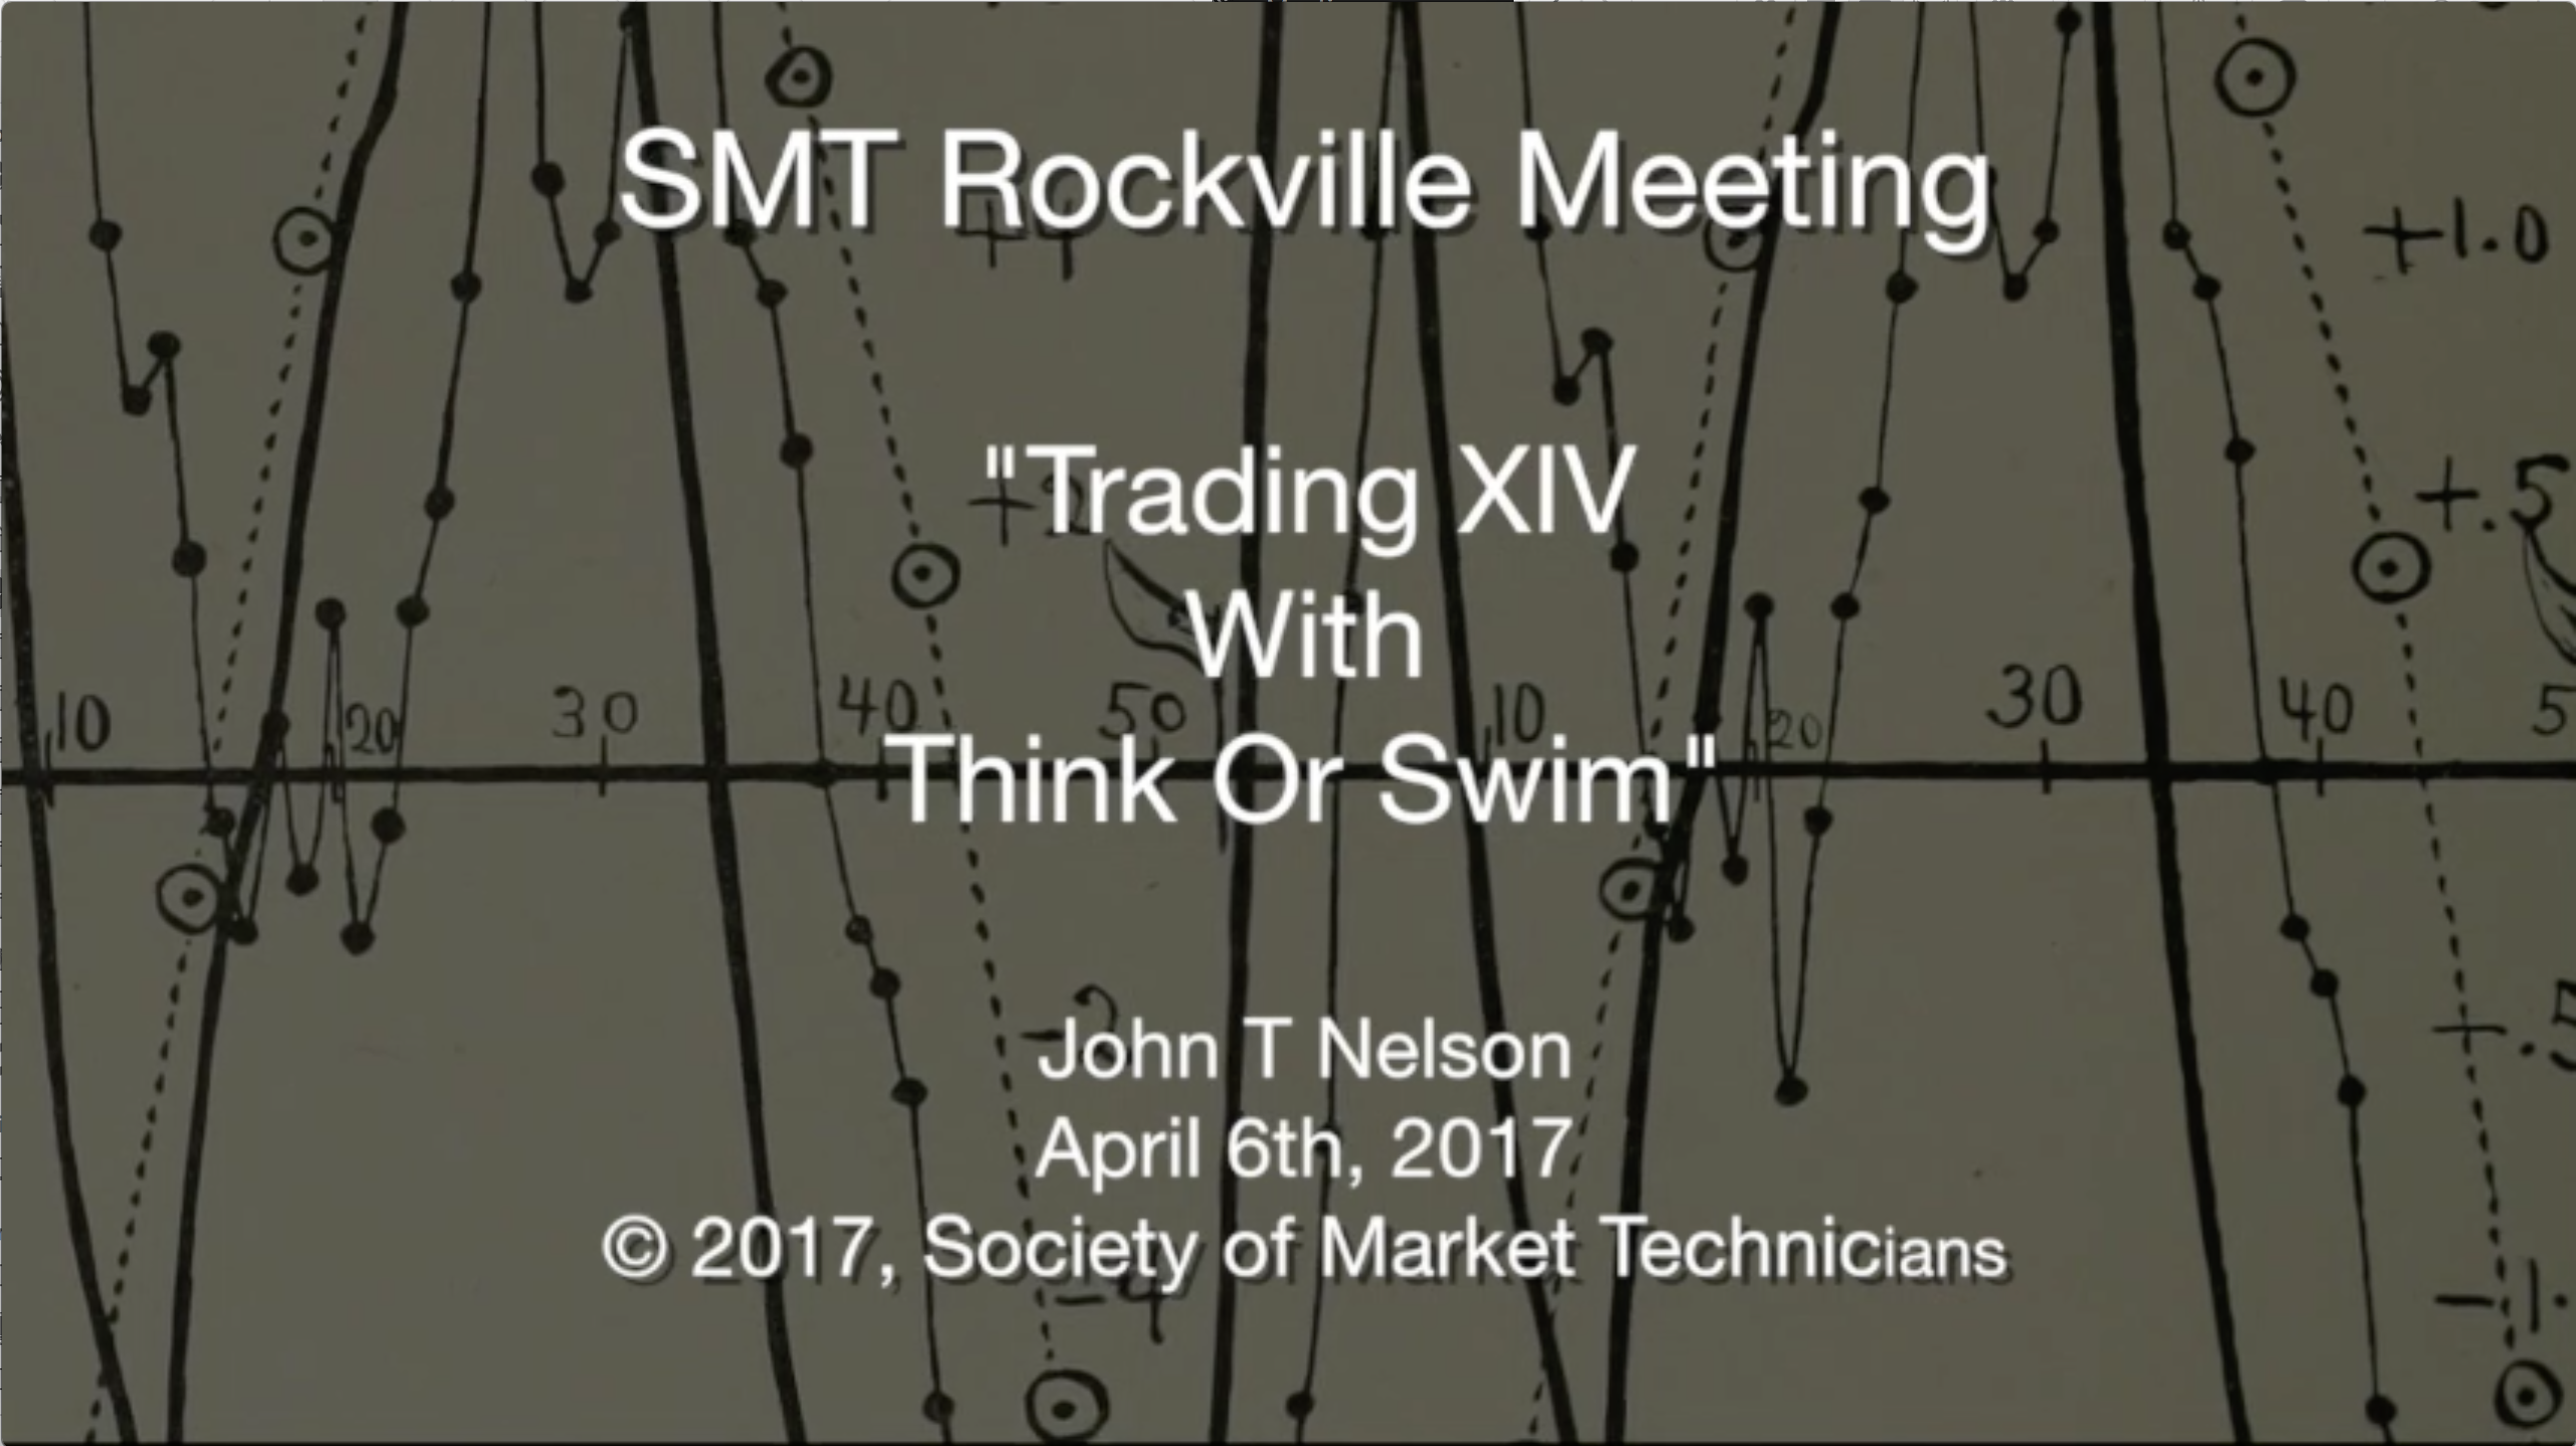 Trading XIV With Think Or Swim | Society of Market Technicians